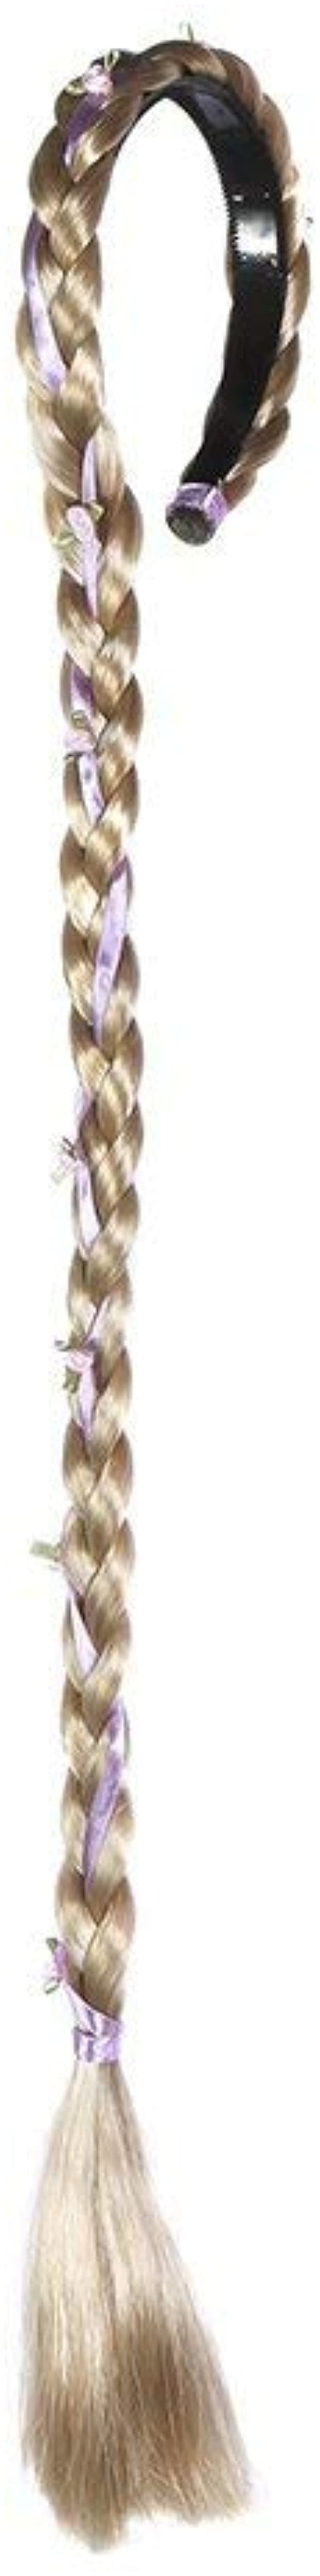 Storybrook Princess Braid